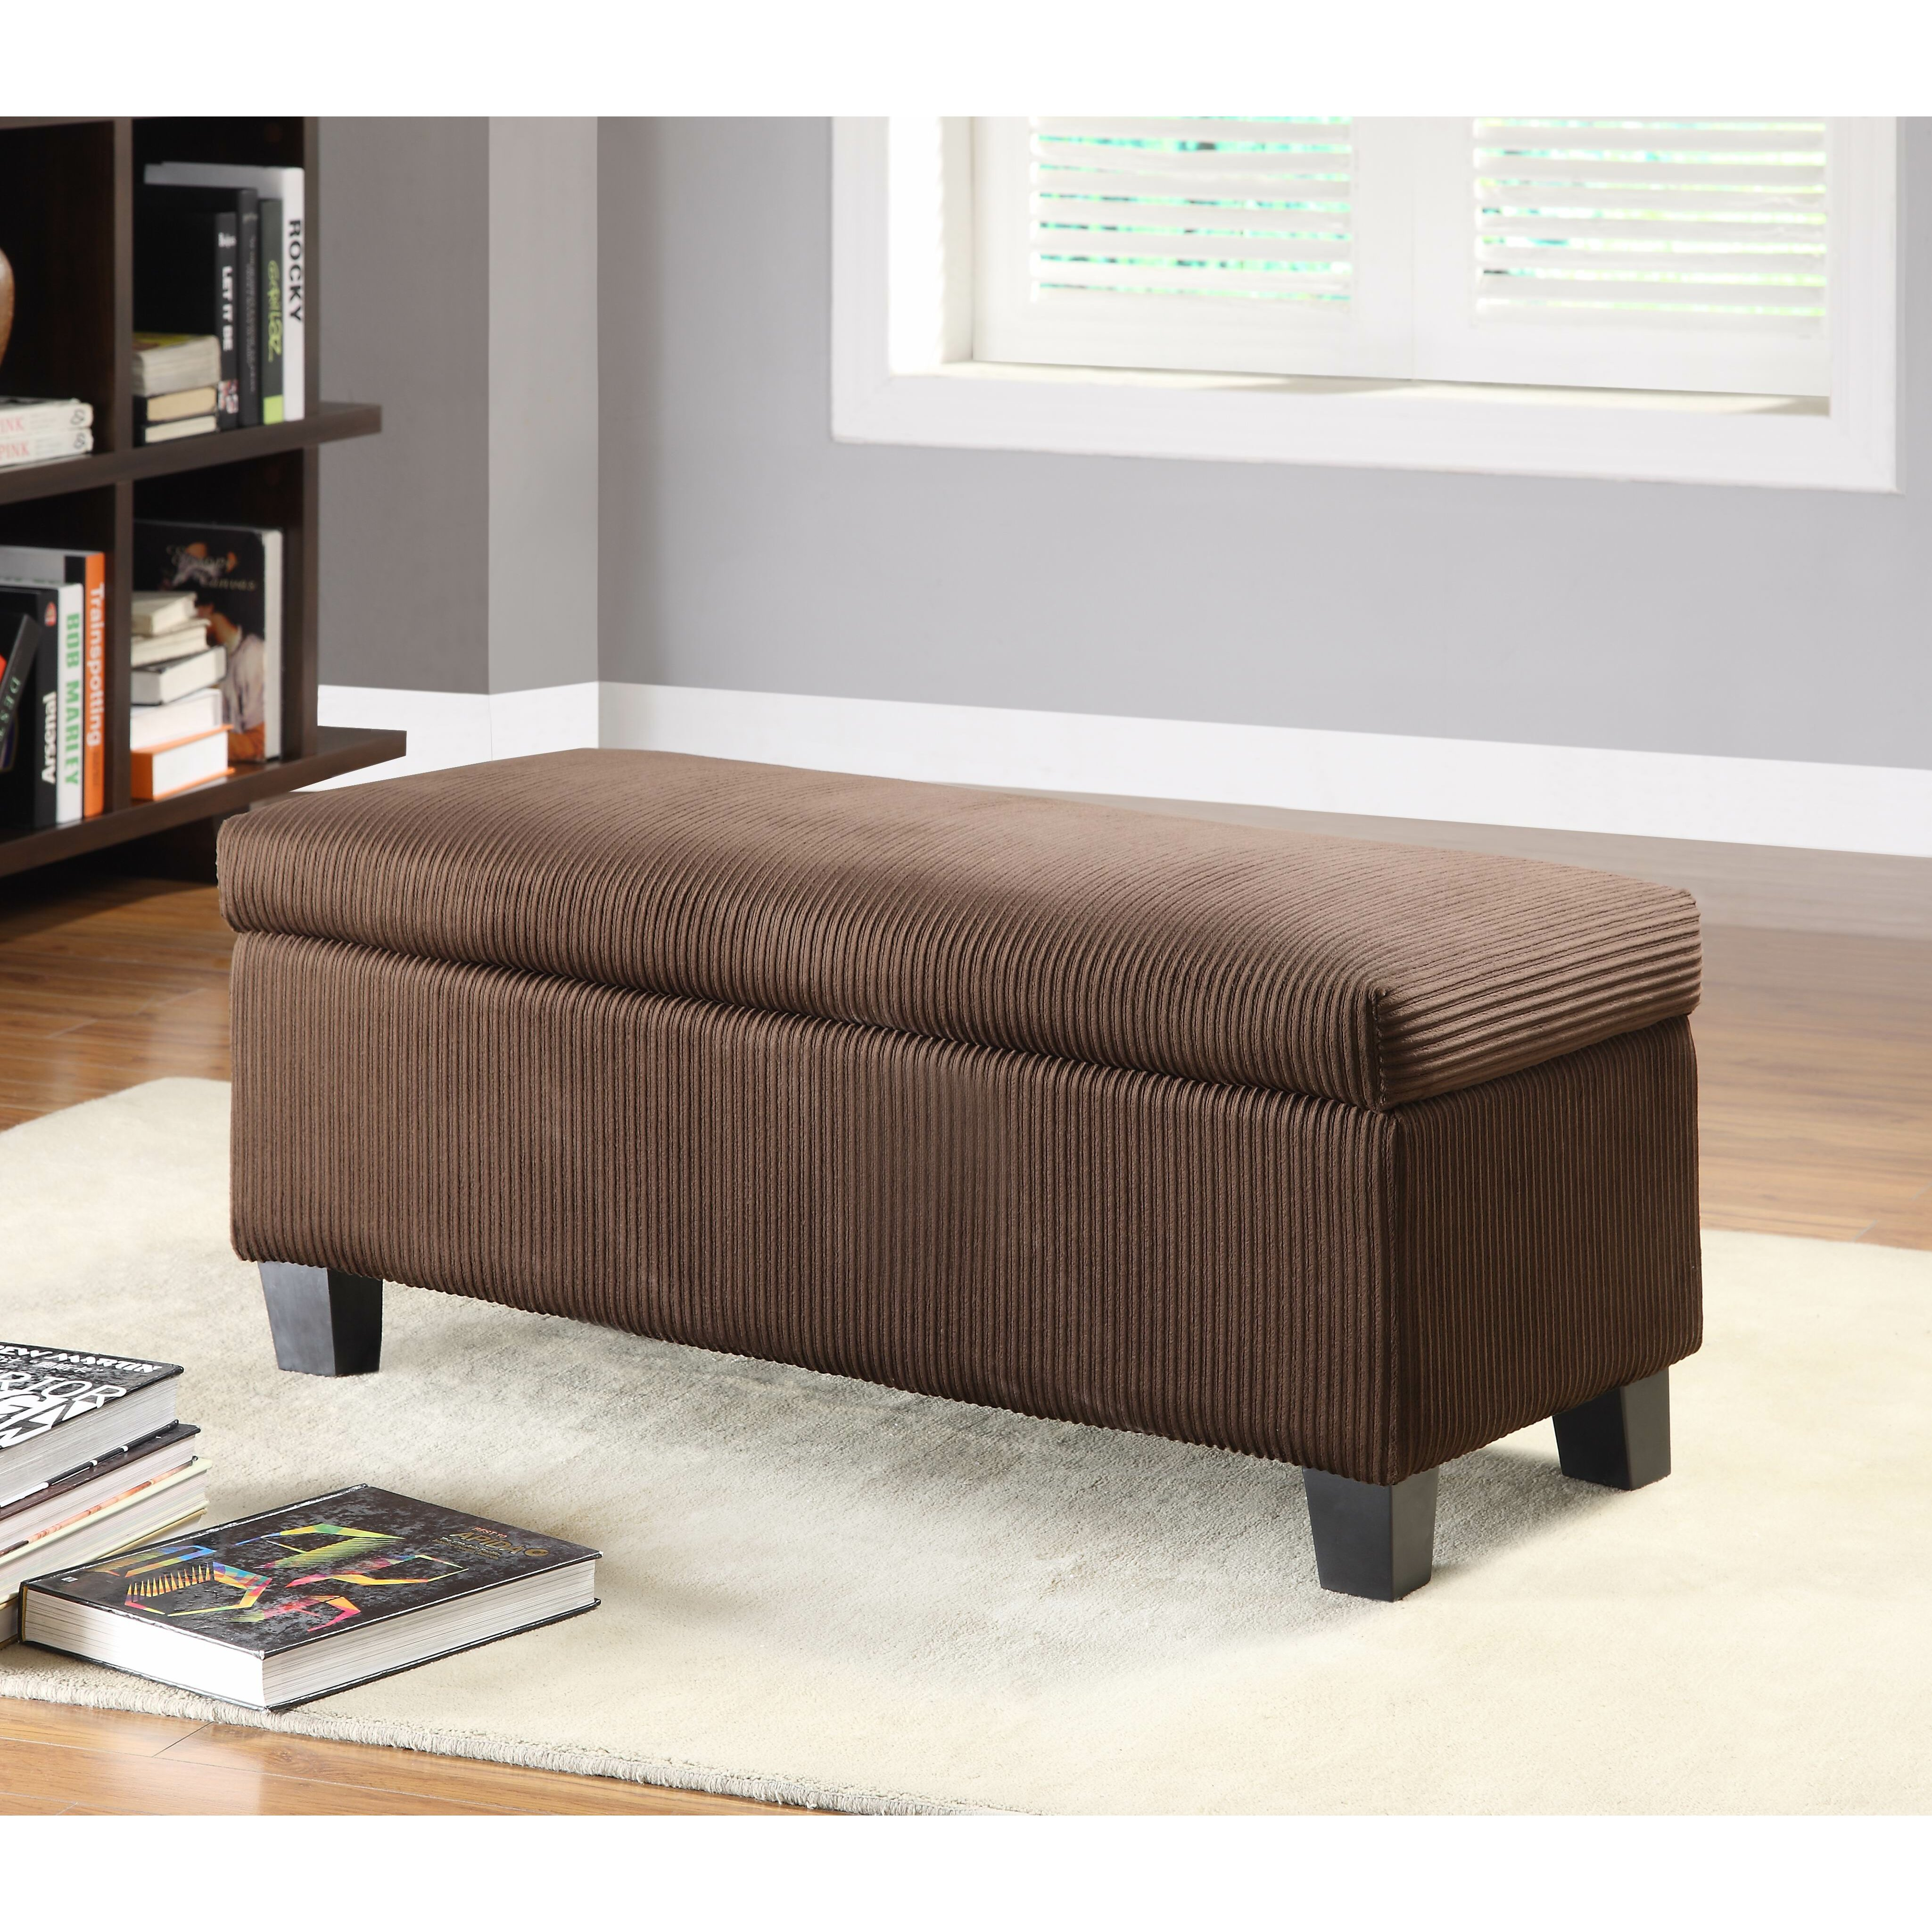 Woodbridge Home Designs Furniture Woodhaven Hill Clair New Fabric Bedroom Storage Ottoman